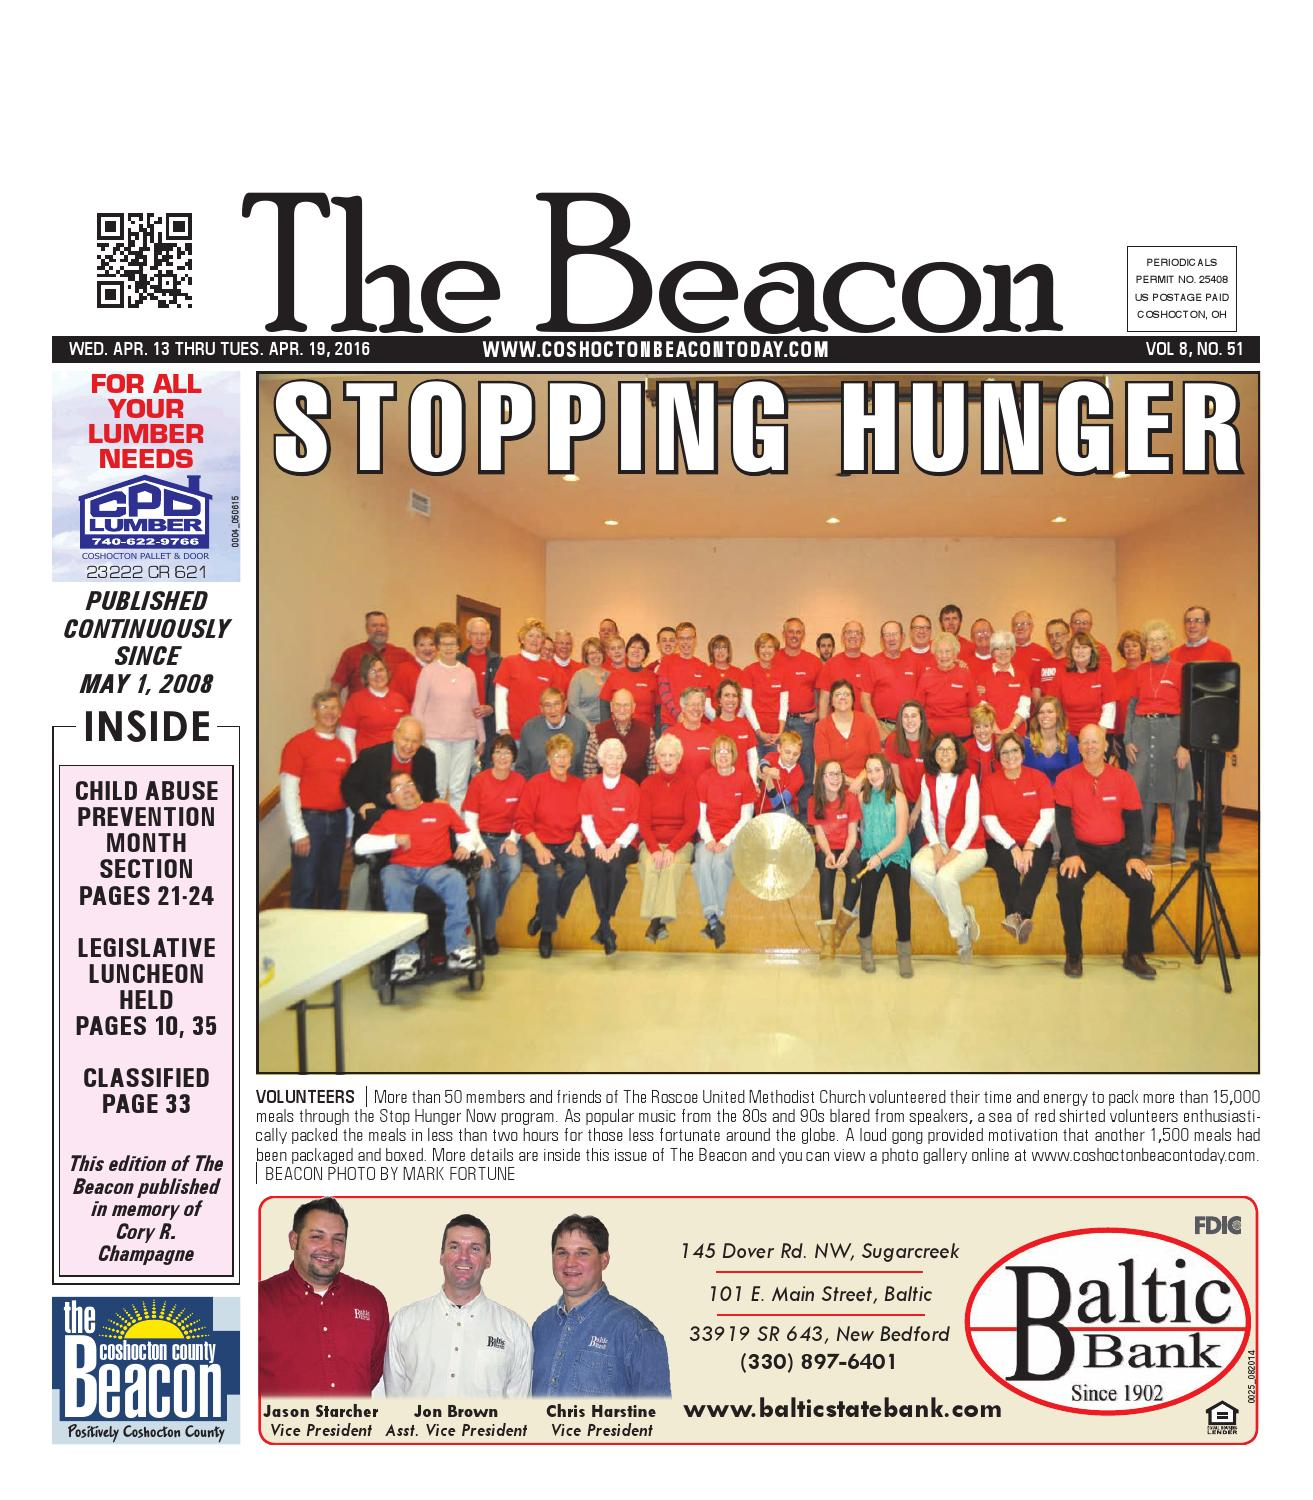 April 13 2016 coshocton county beacon by the coshocton county april 13 2016 coshocton county beacon by the coshocton county beacon issuu fandeluxe Choice Image